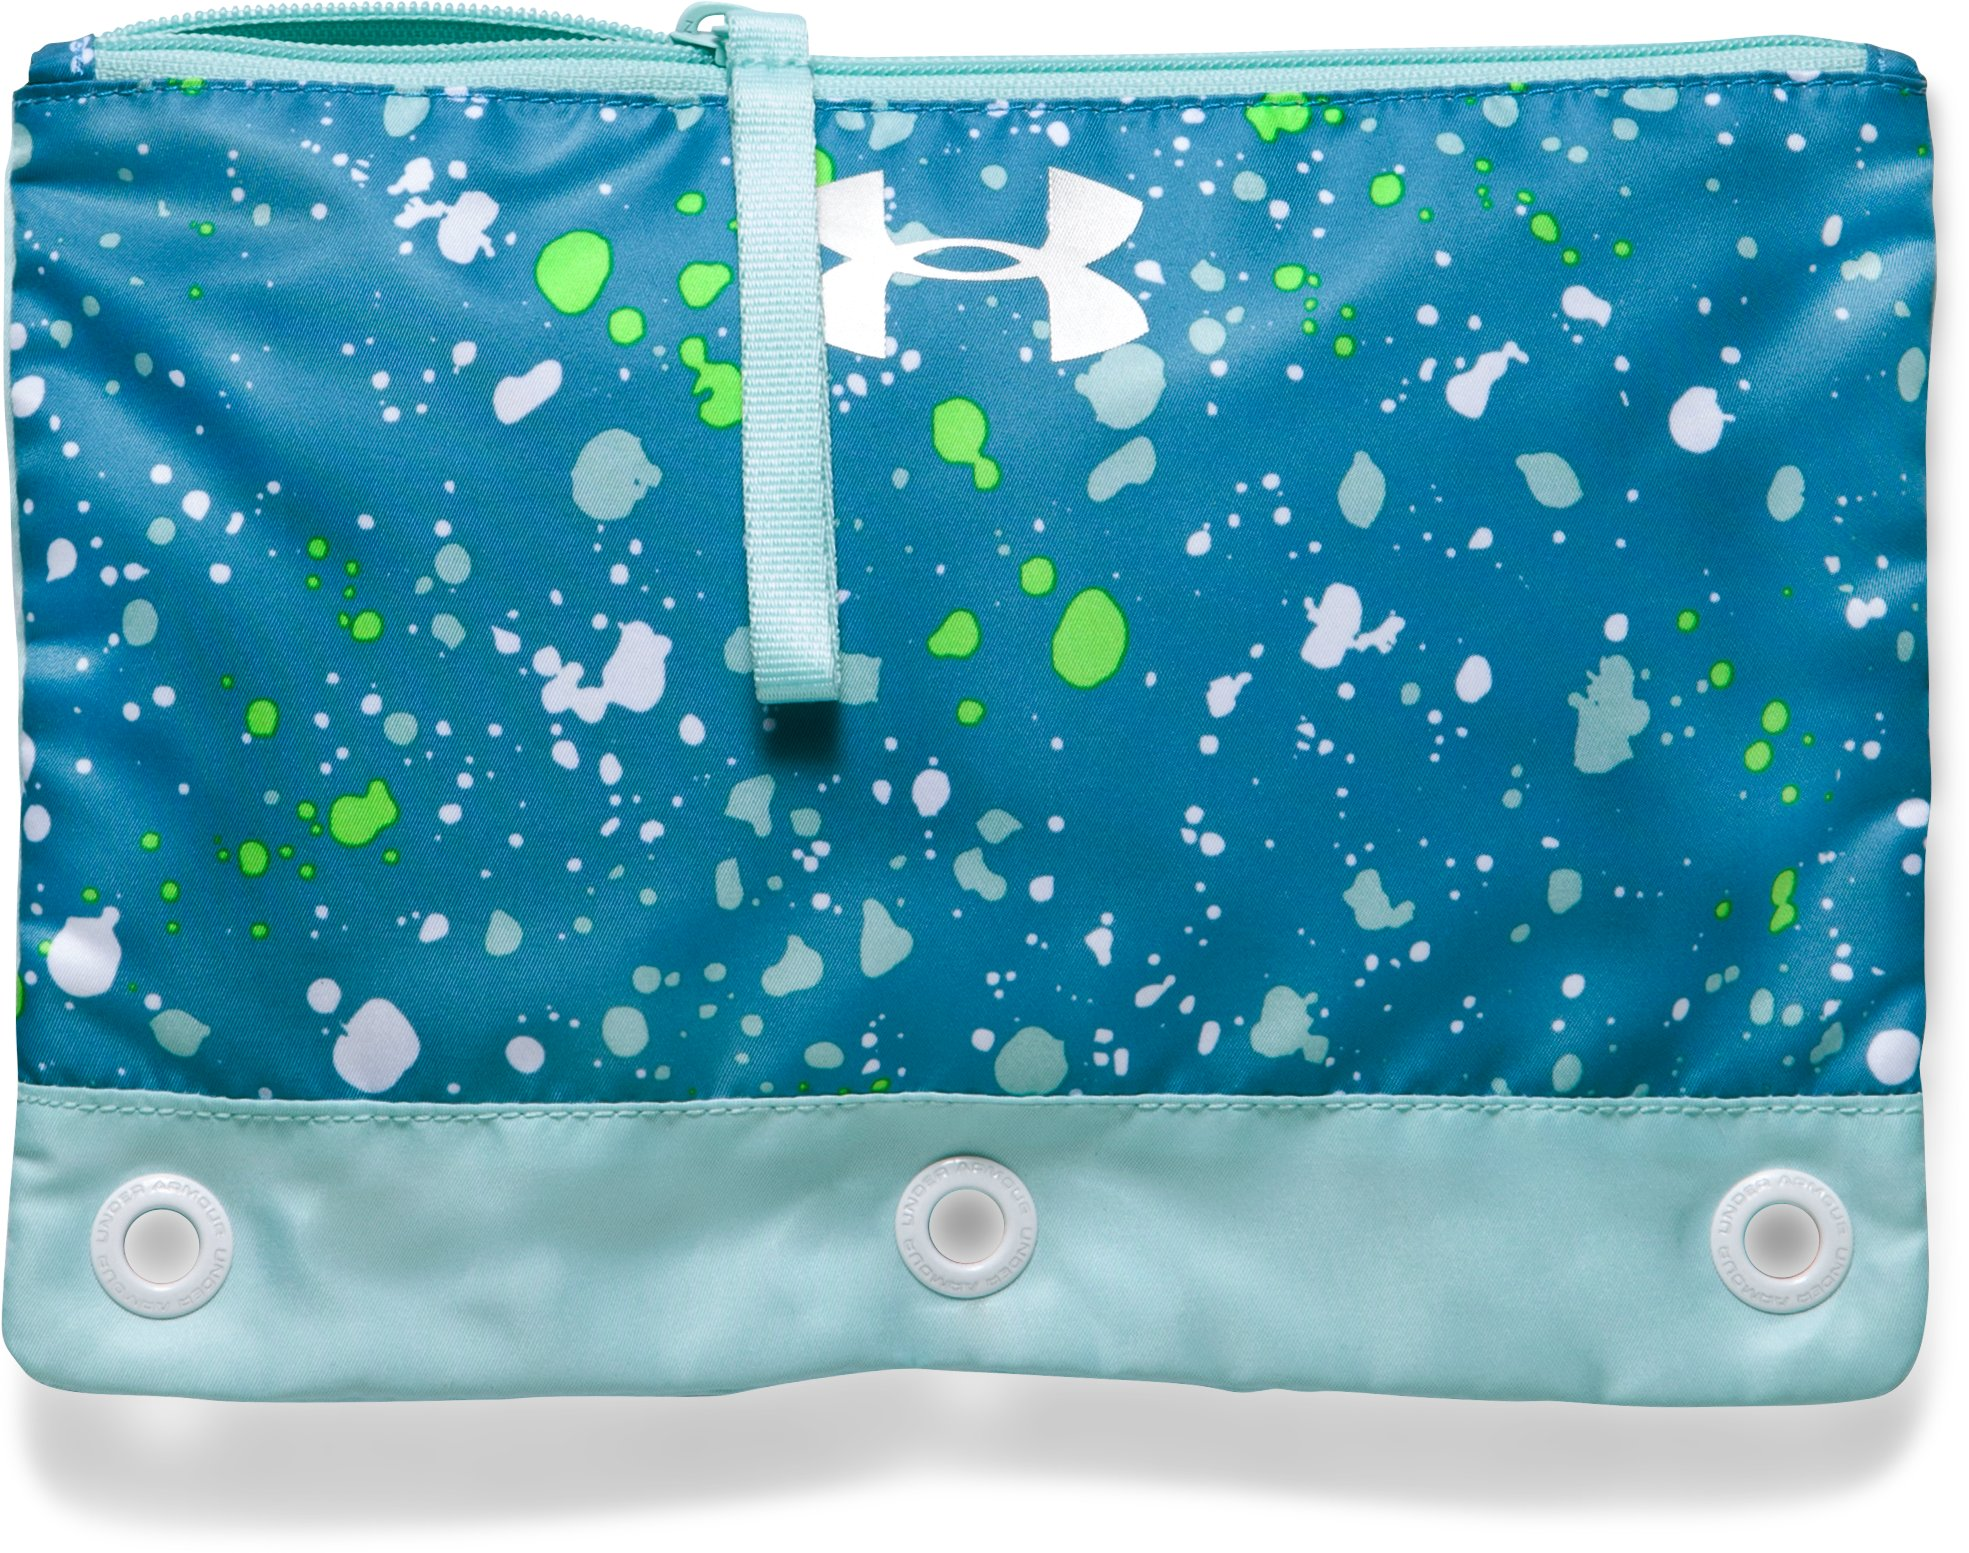 Girls Pencil Case, BLUE SHIFT, zoomed image